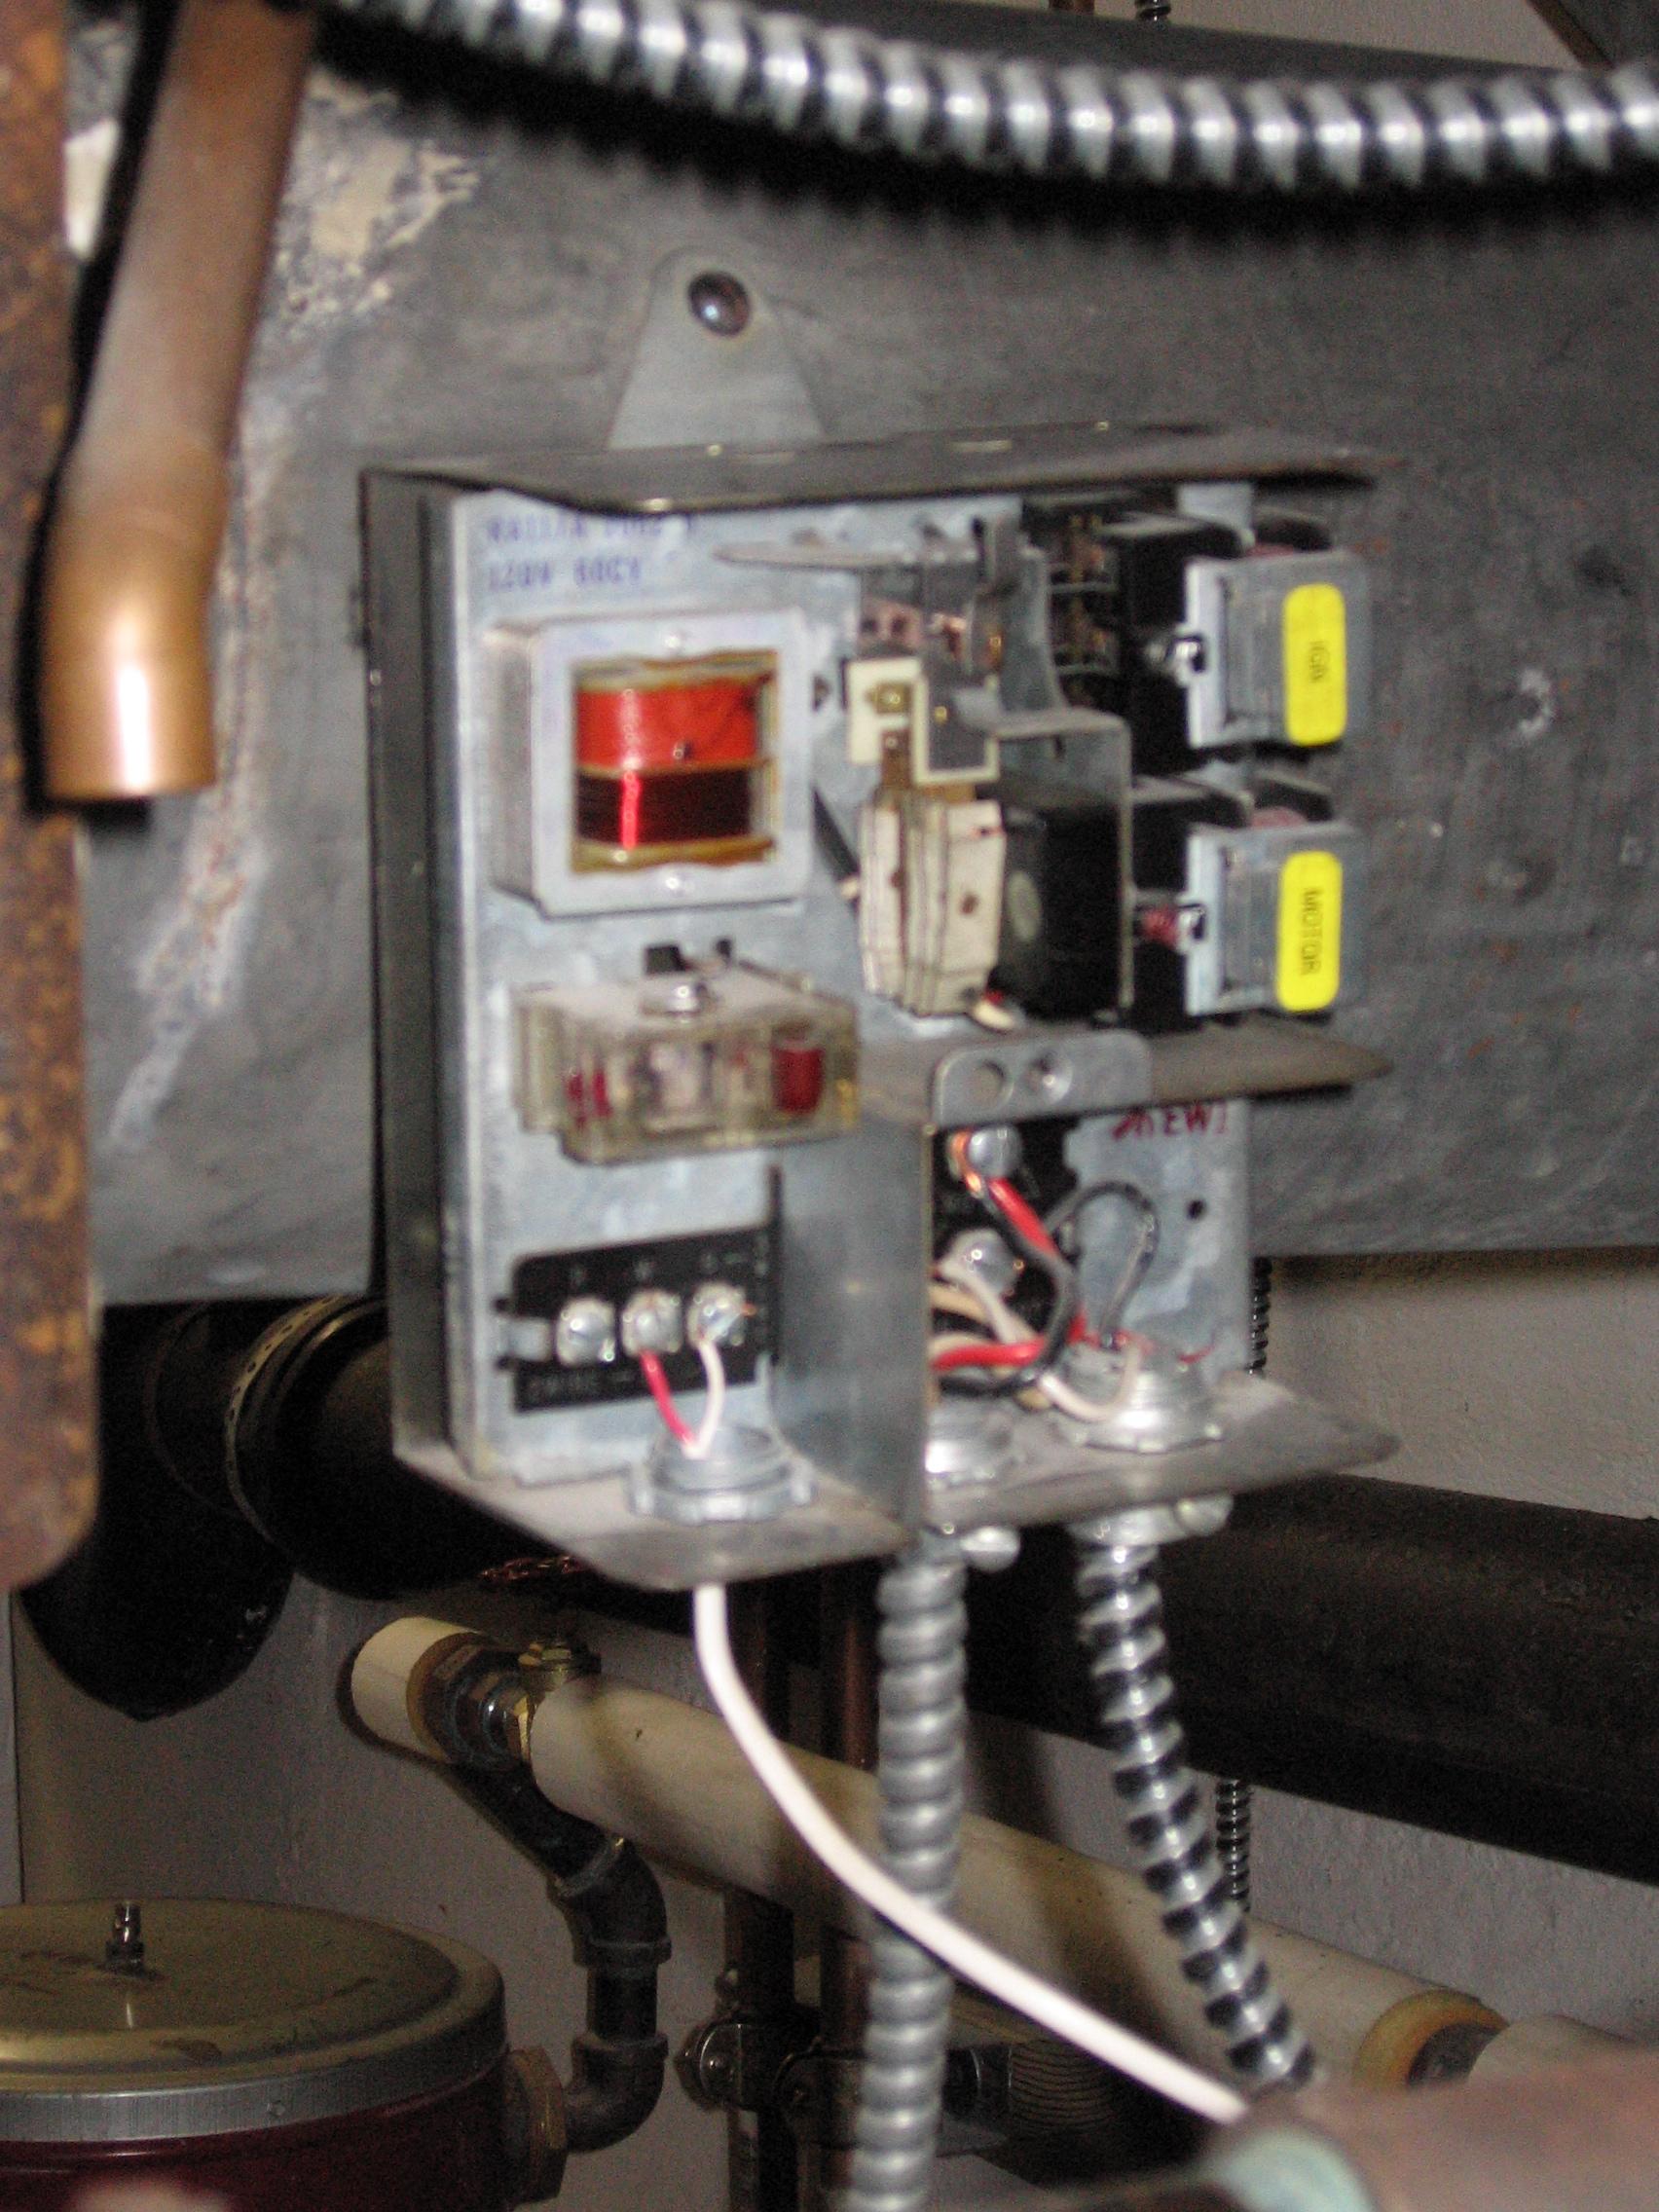 Relay Control Question For Hot Water Loop Off Steam Boiler Heating Ribu1c Wiring Img 9813